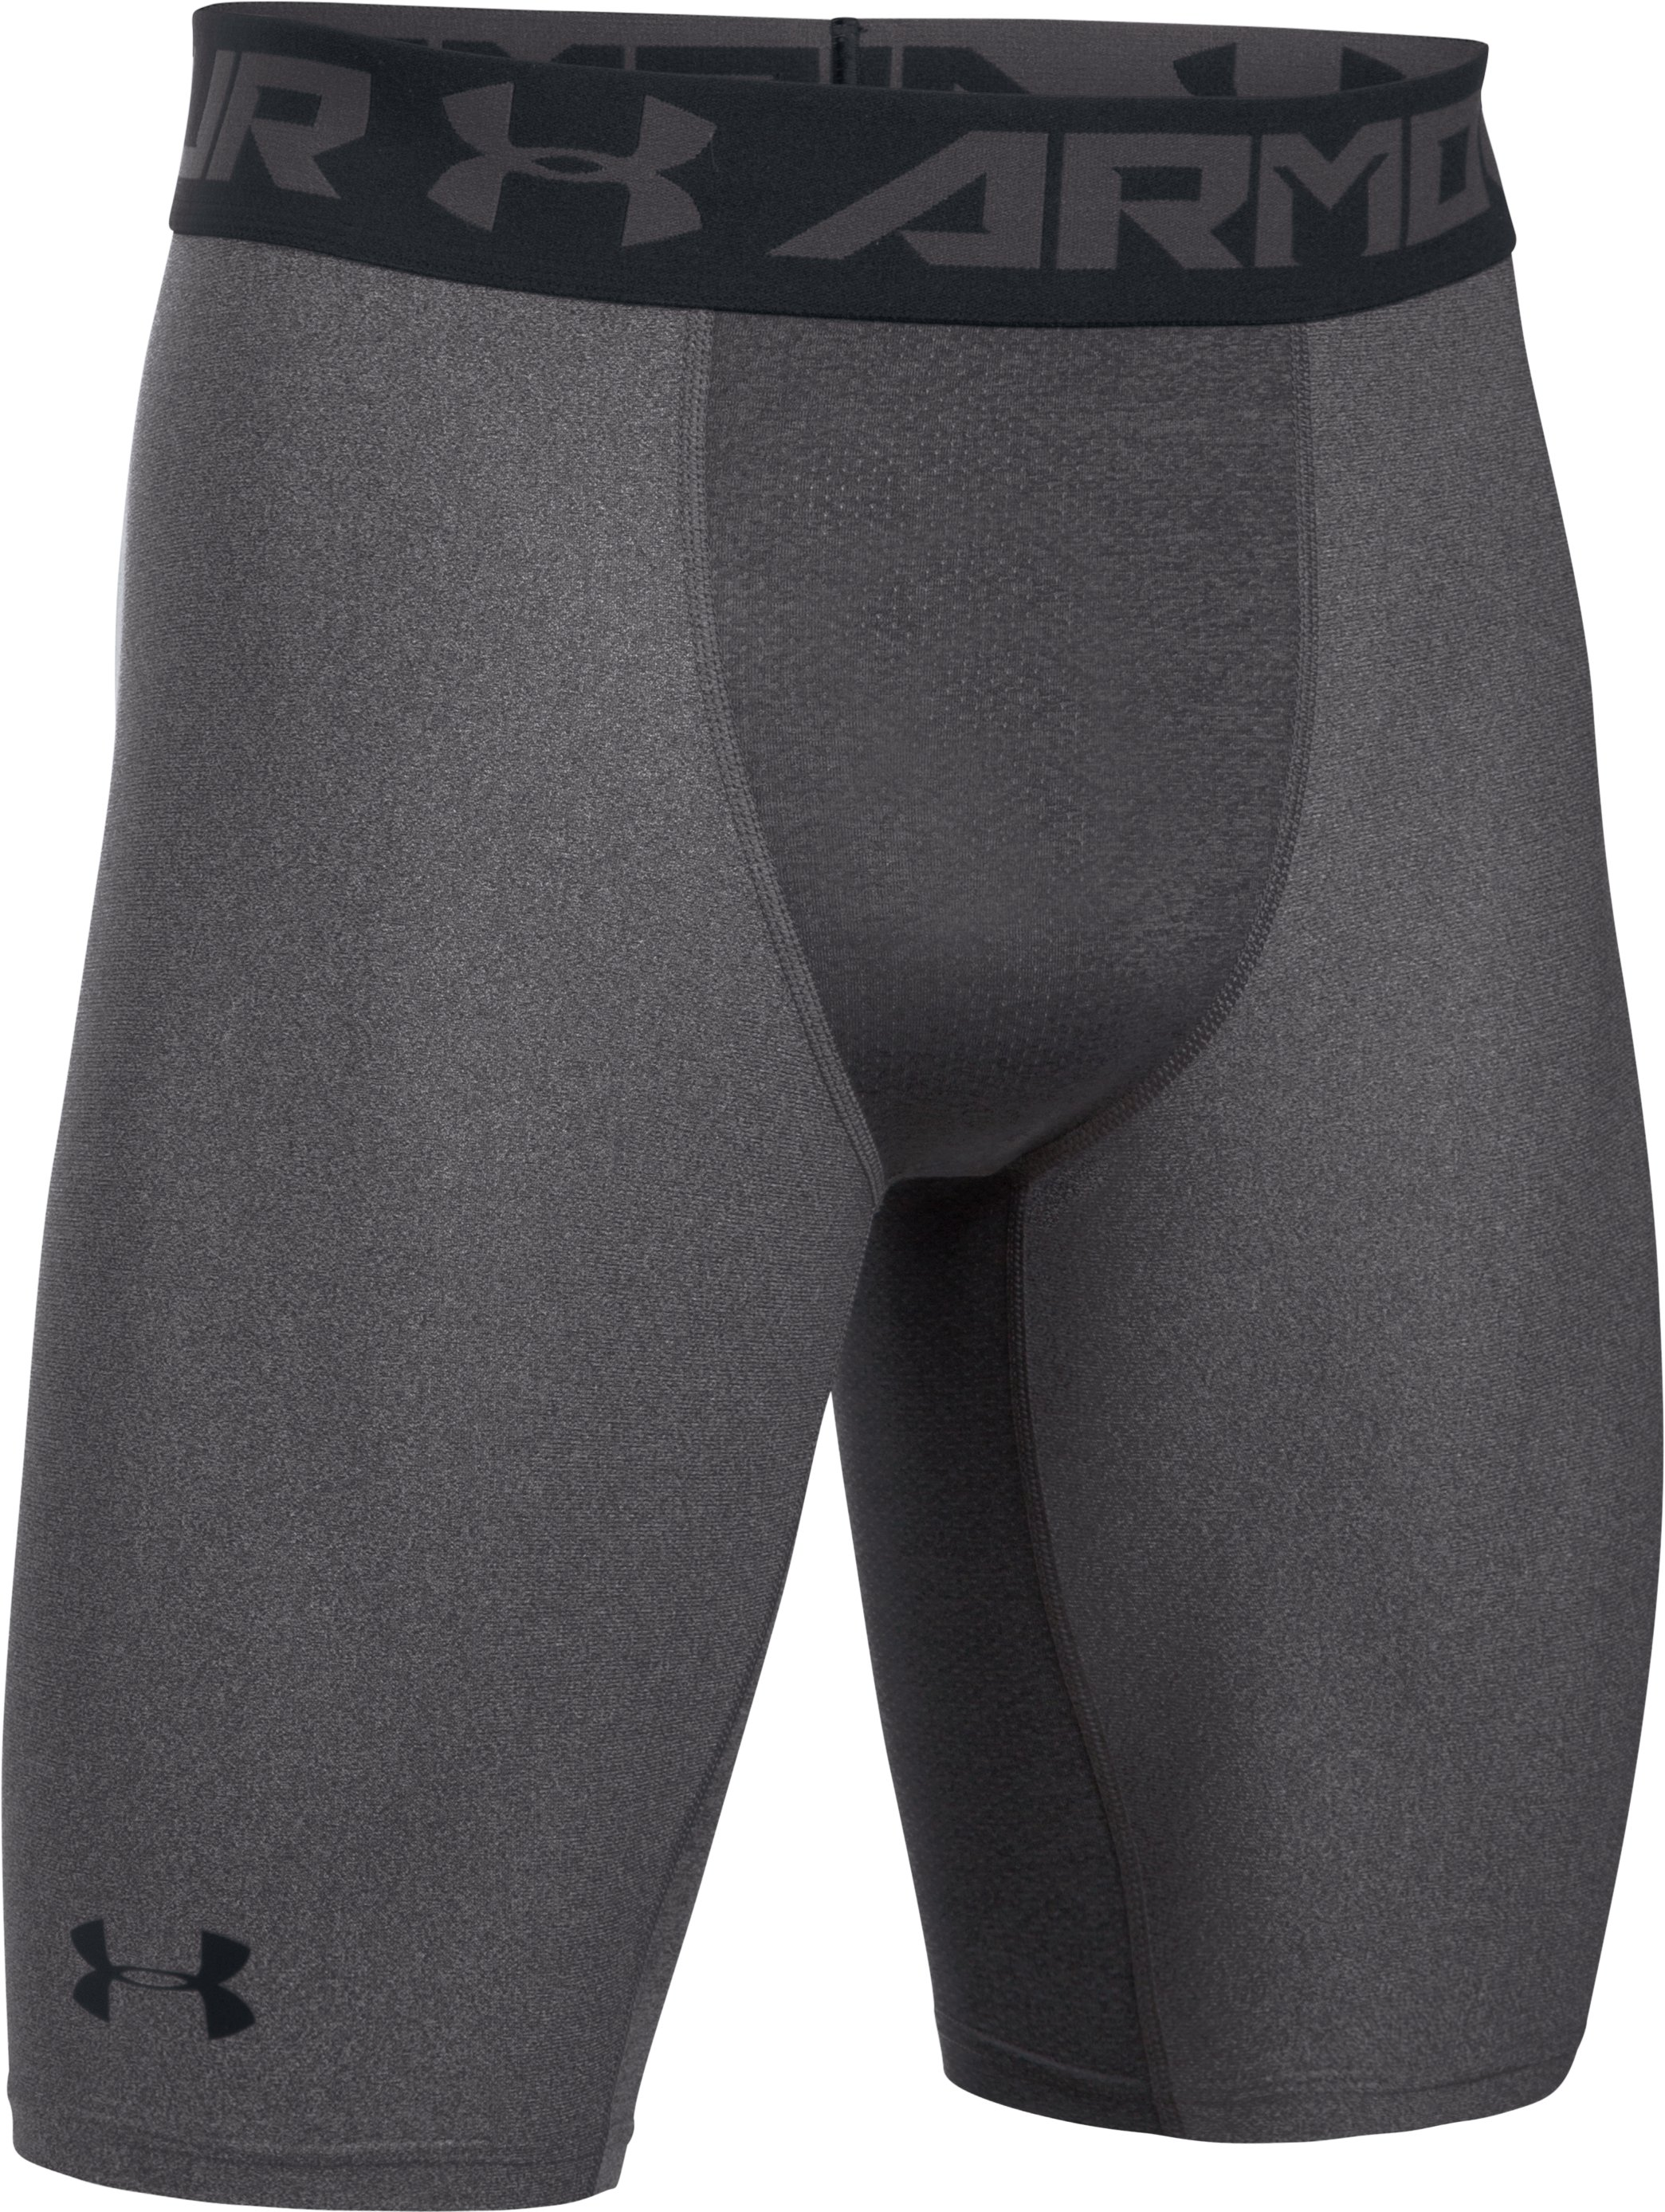 Men's HeatGear® Armour Long Compression Shorts, Carbon Heather, undefined